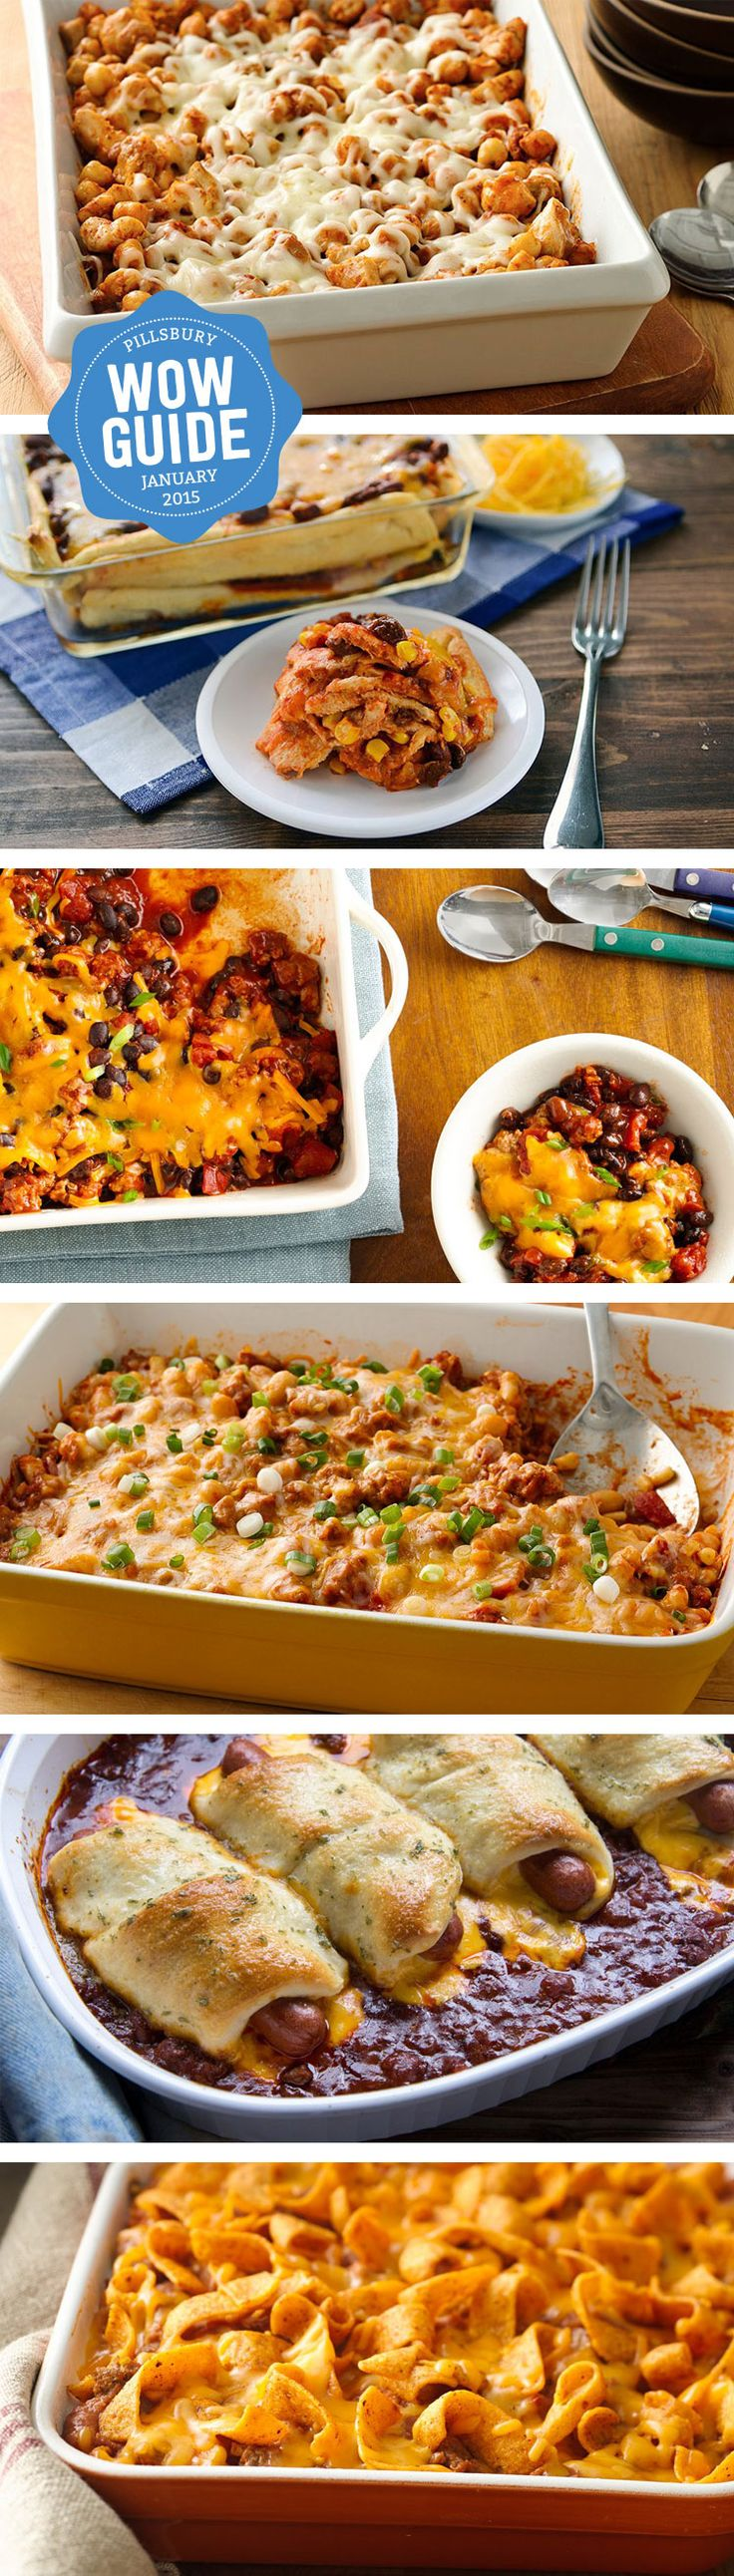 Check out our collection of 6 easy, cheesy chili bakes. Perfect for a weeknight dinner or serve with tortilla chips for a game-day dip.